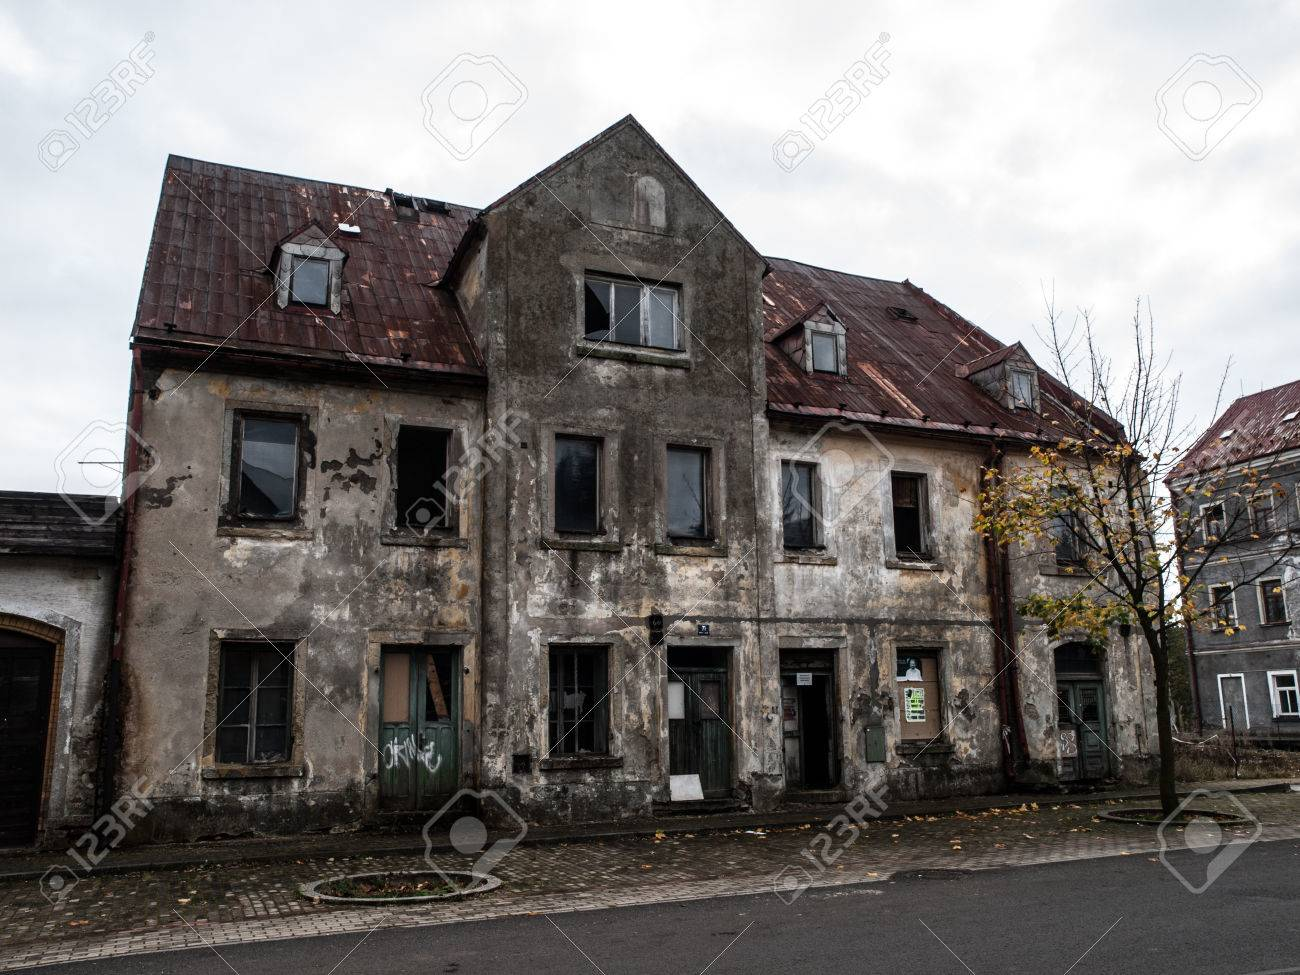 Sensational Abandoned House With Devasted Facade And Broken Windows Download Free Architecture Designs Itiscsunscenecom